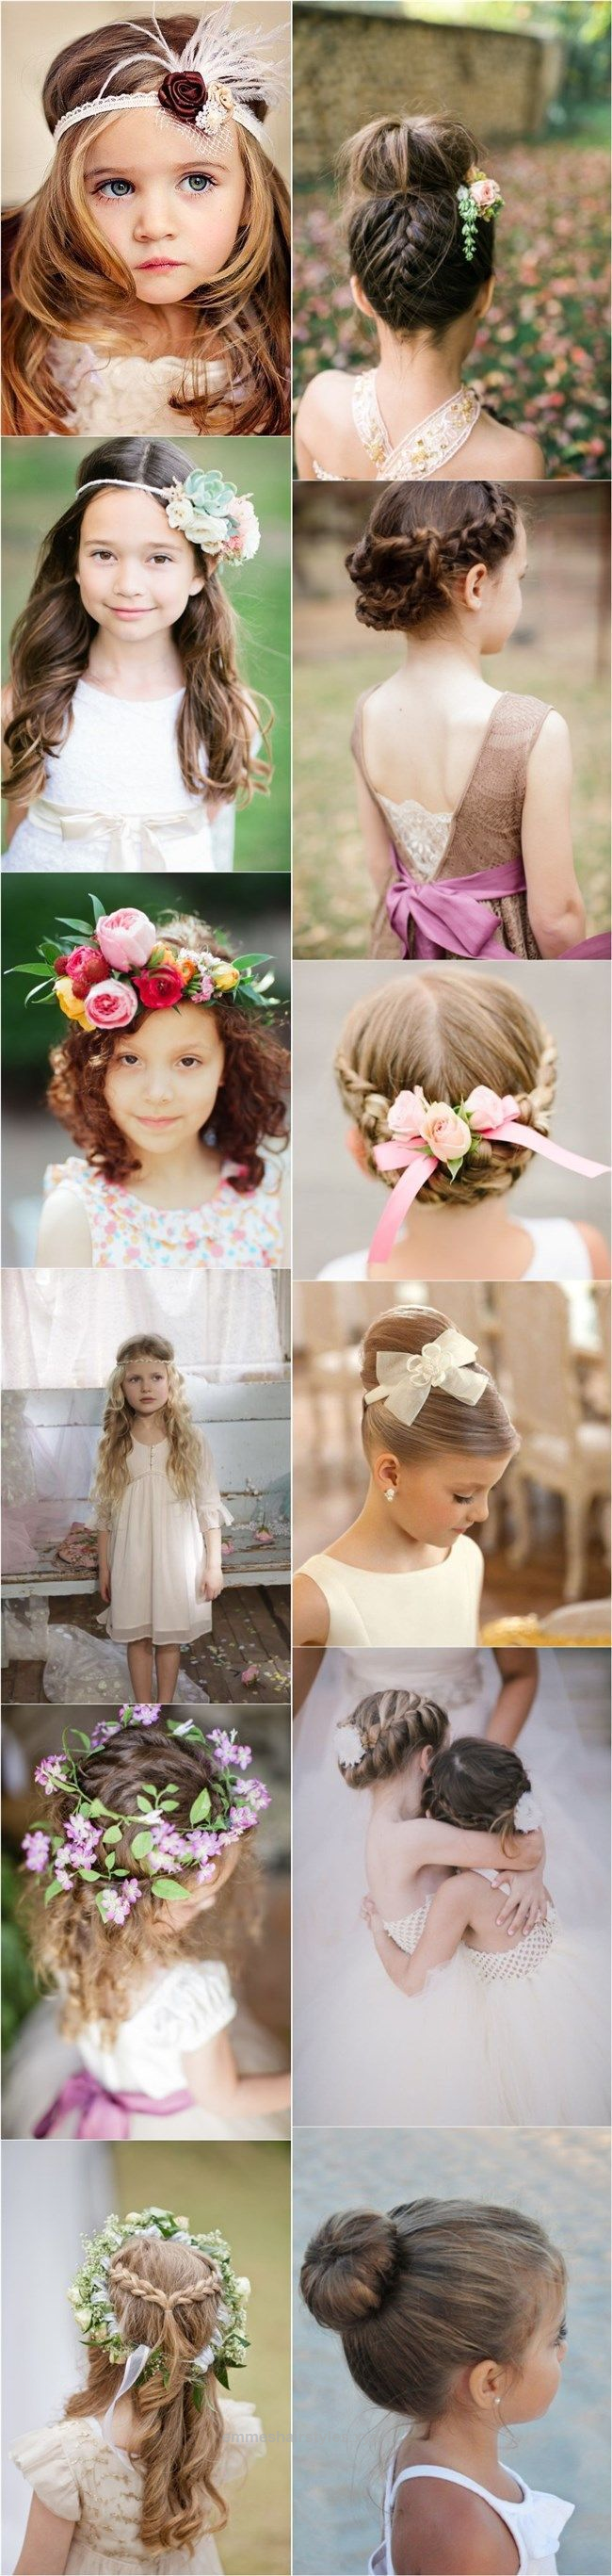 awesome 70 Terrific and Simply Cute Haircuts for Girls to ...  |Terrific Little Girl